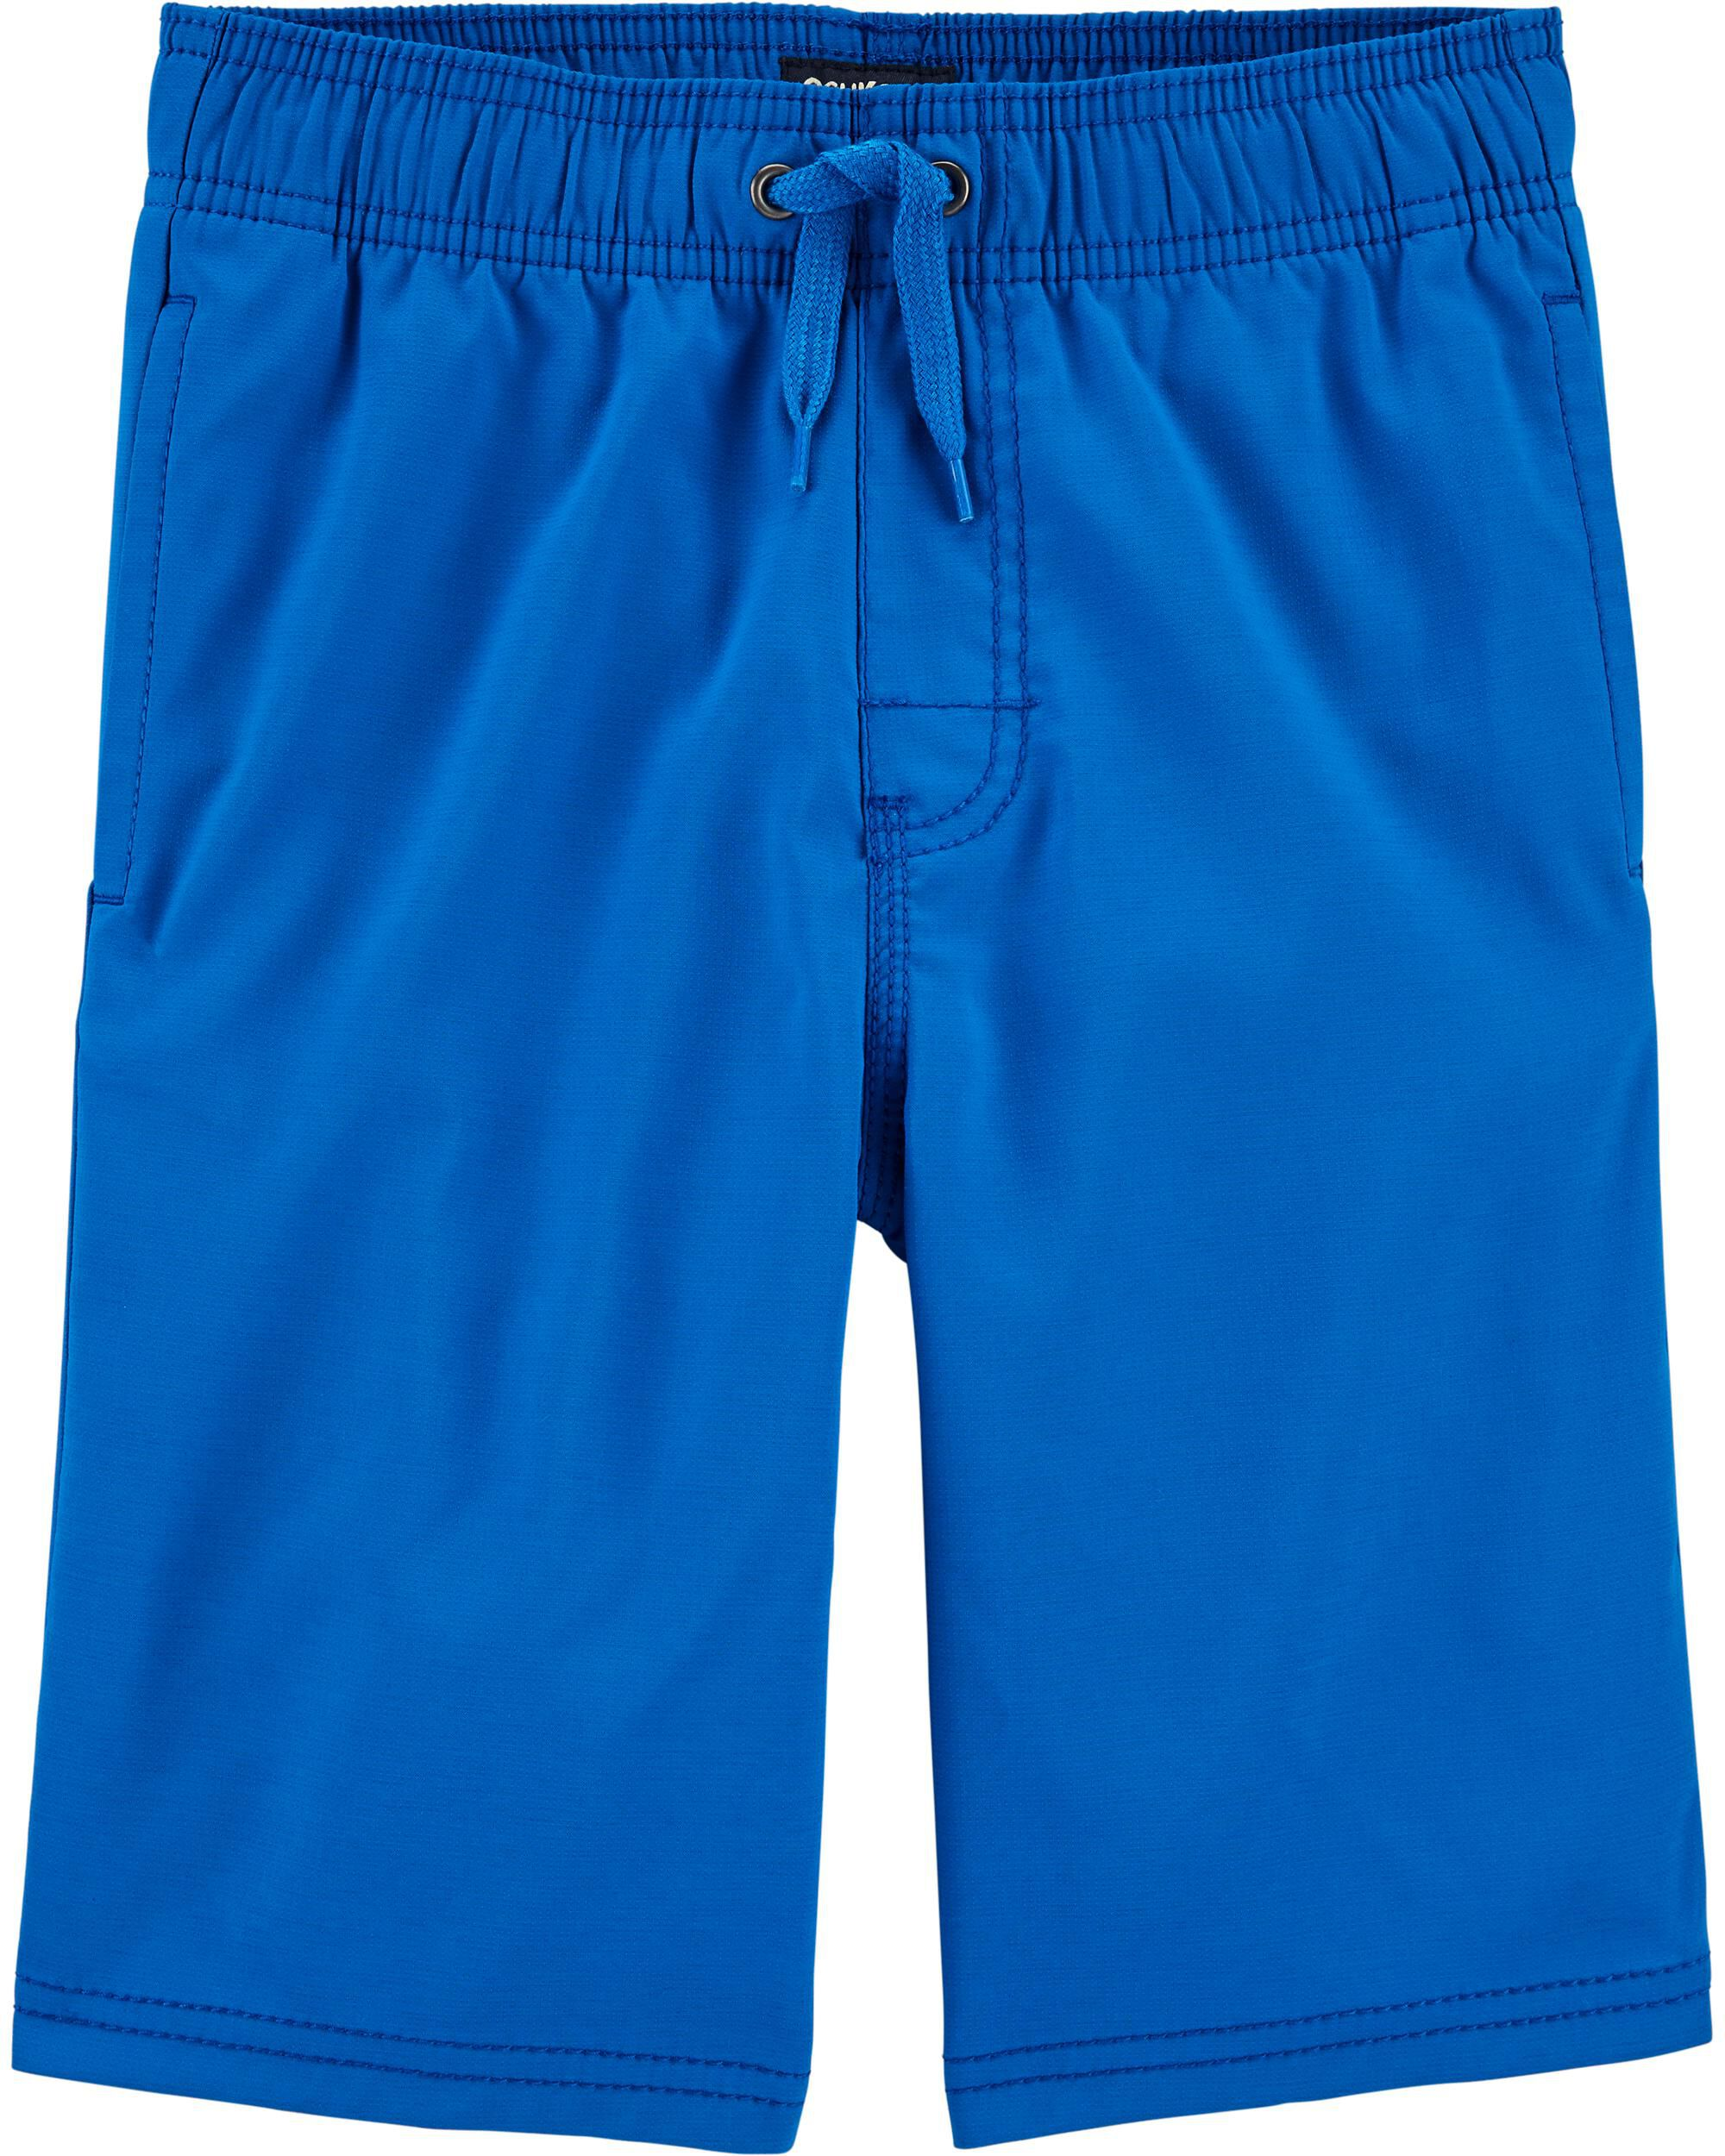 *CLEARANCE* Color Change Pool-to-Play Shorts